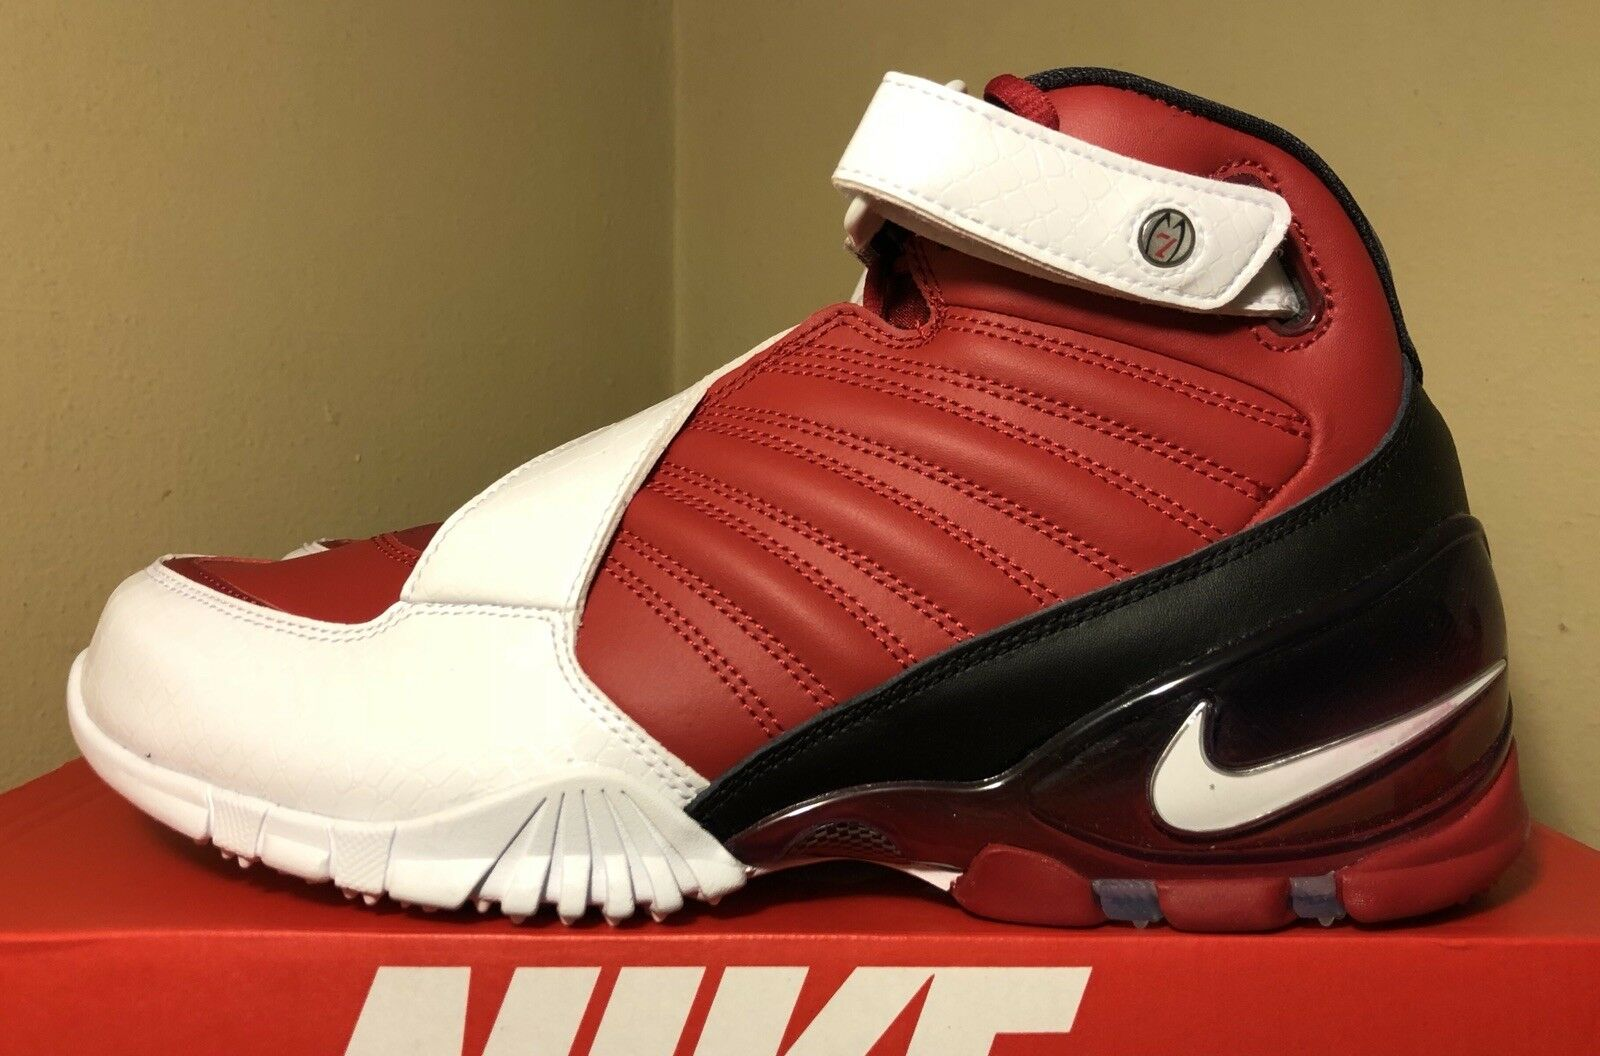 Nike Zoom Vic III (3) In Varsity Red Sz. 9.5 New In Original Box 100% Authentic